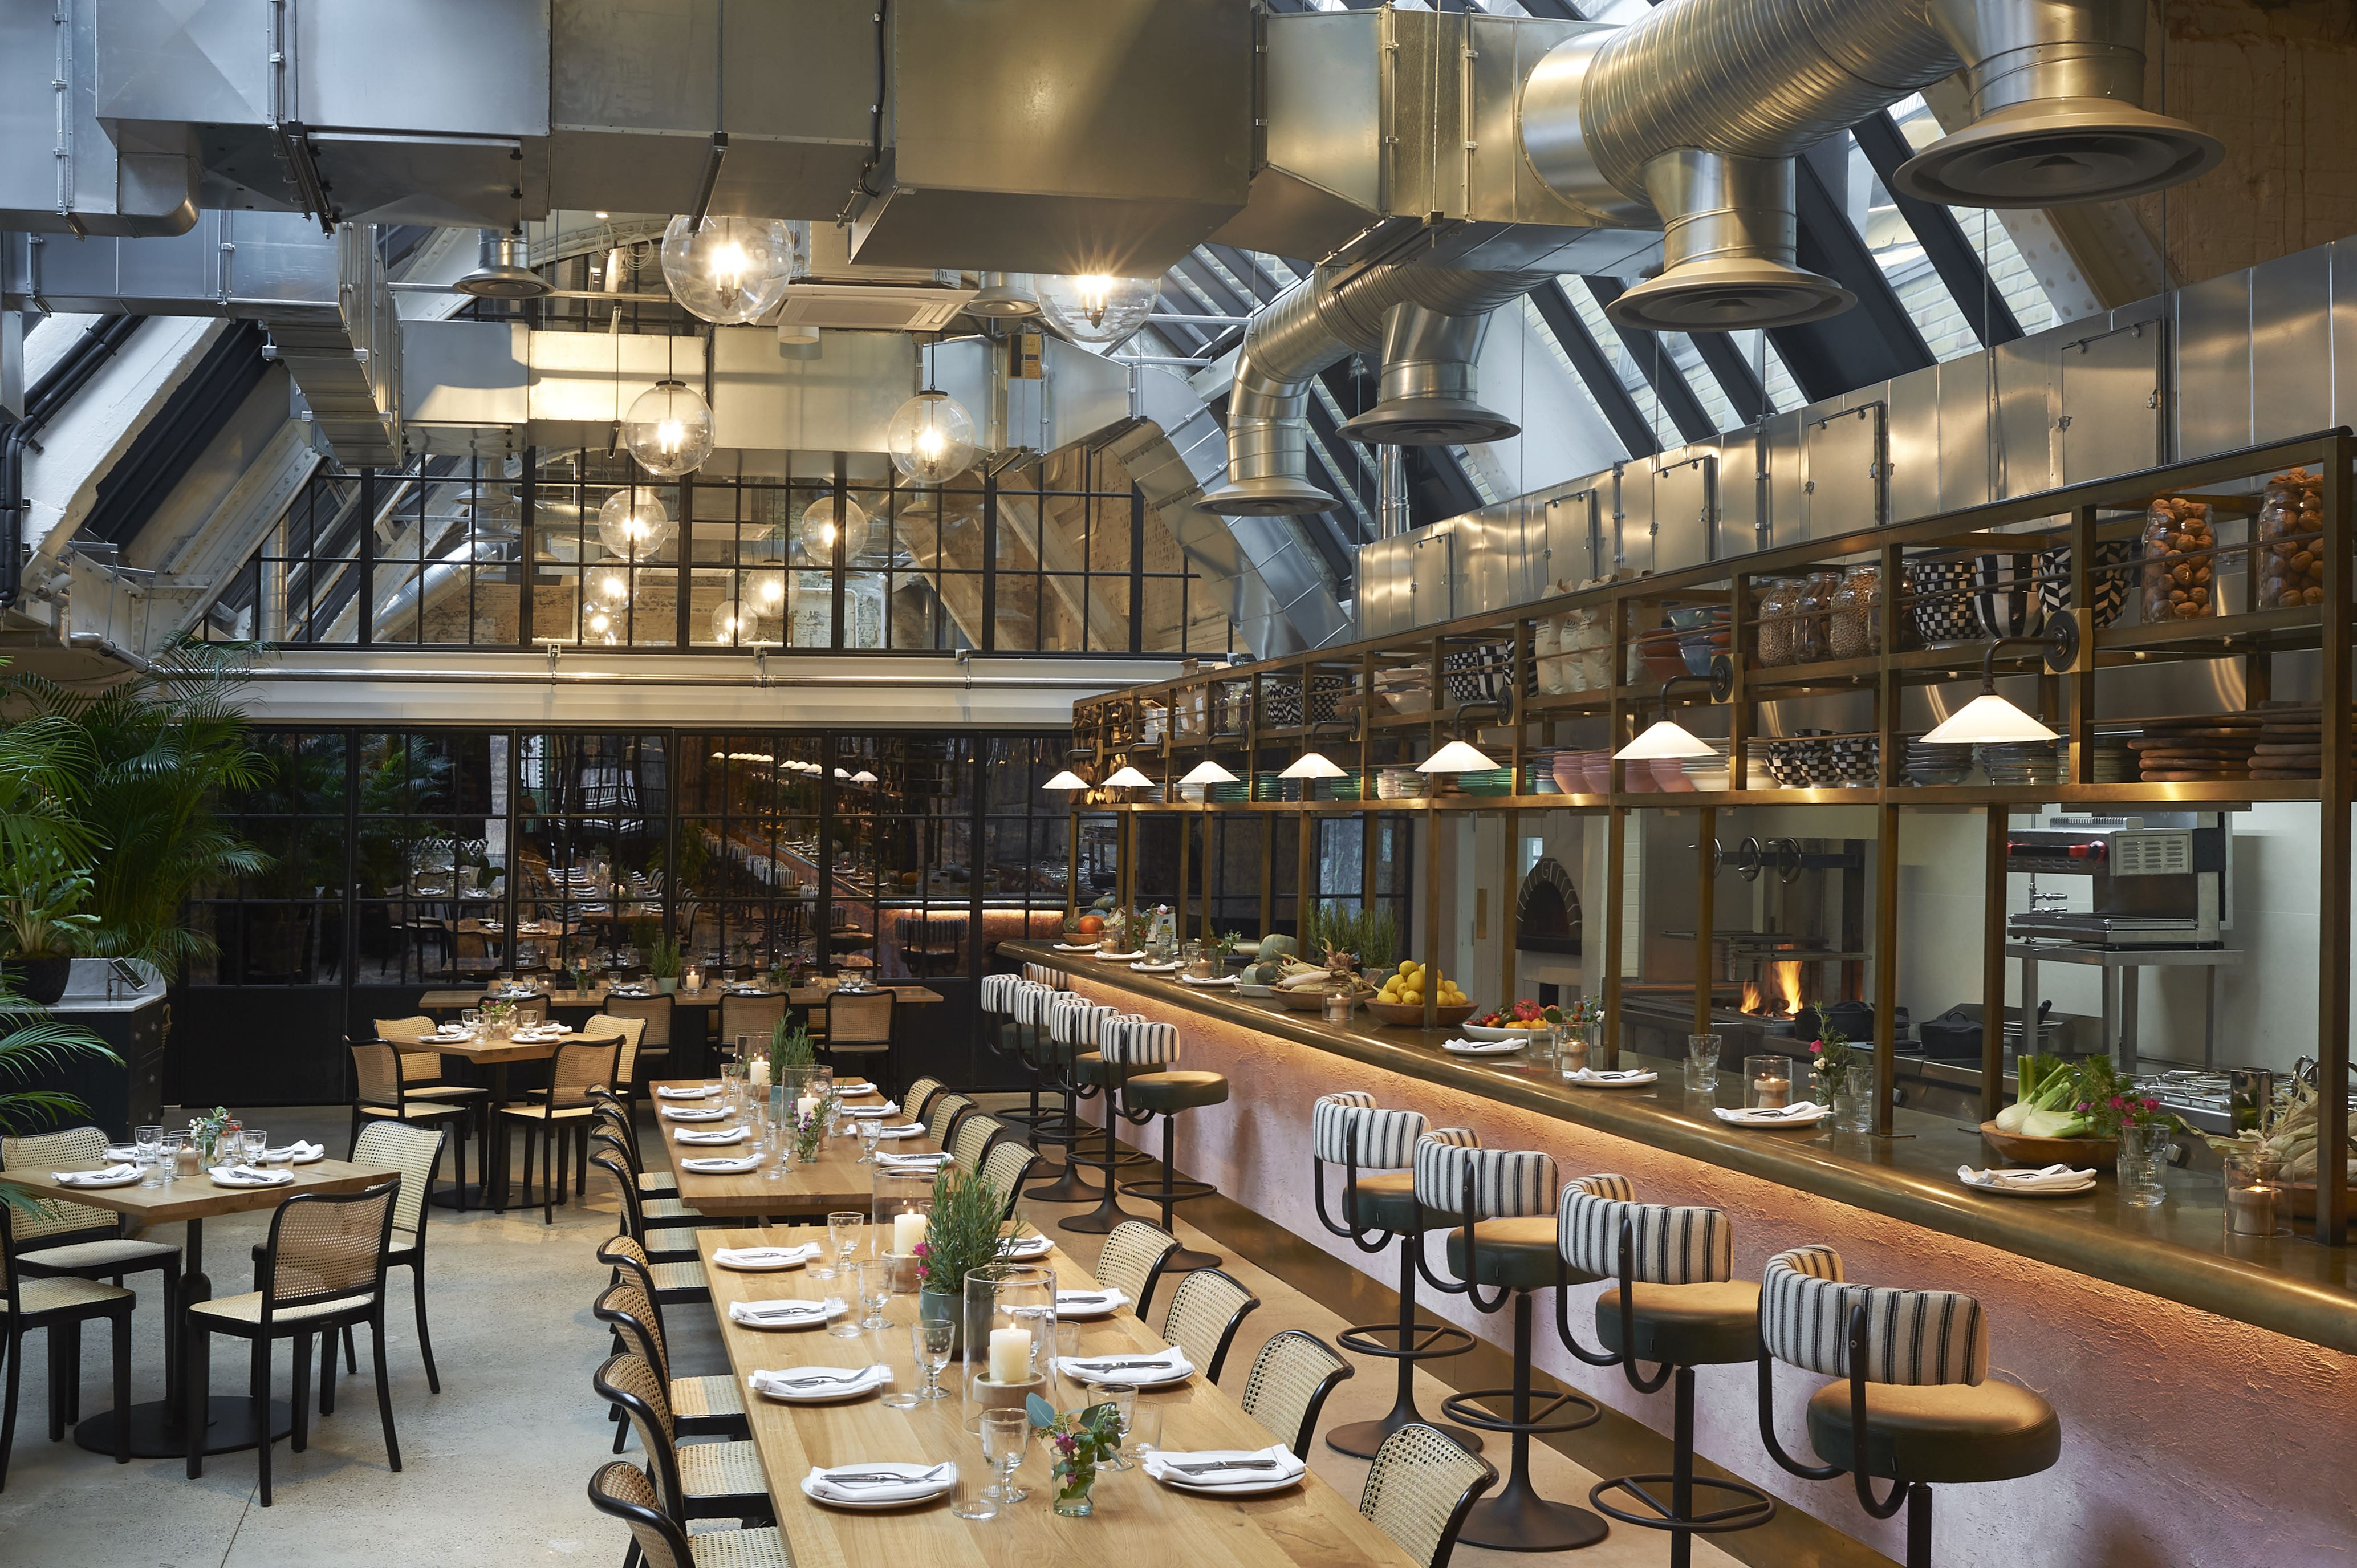 NEW RESTAURANT WILD BY TART OPENS IN FORMER POWER STATION